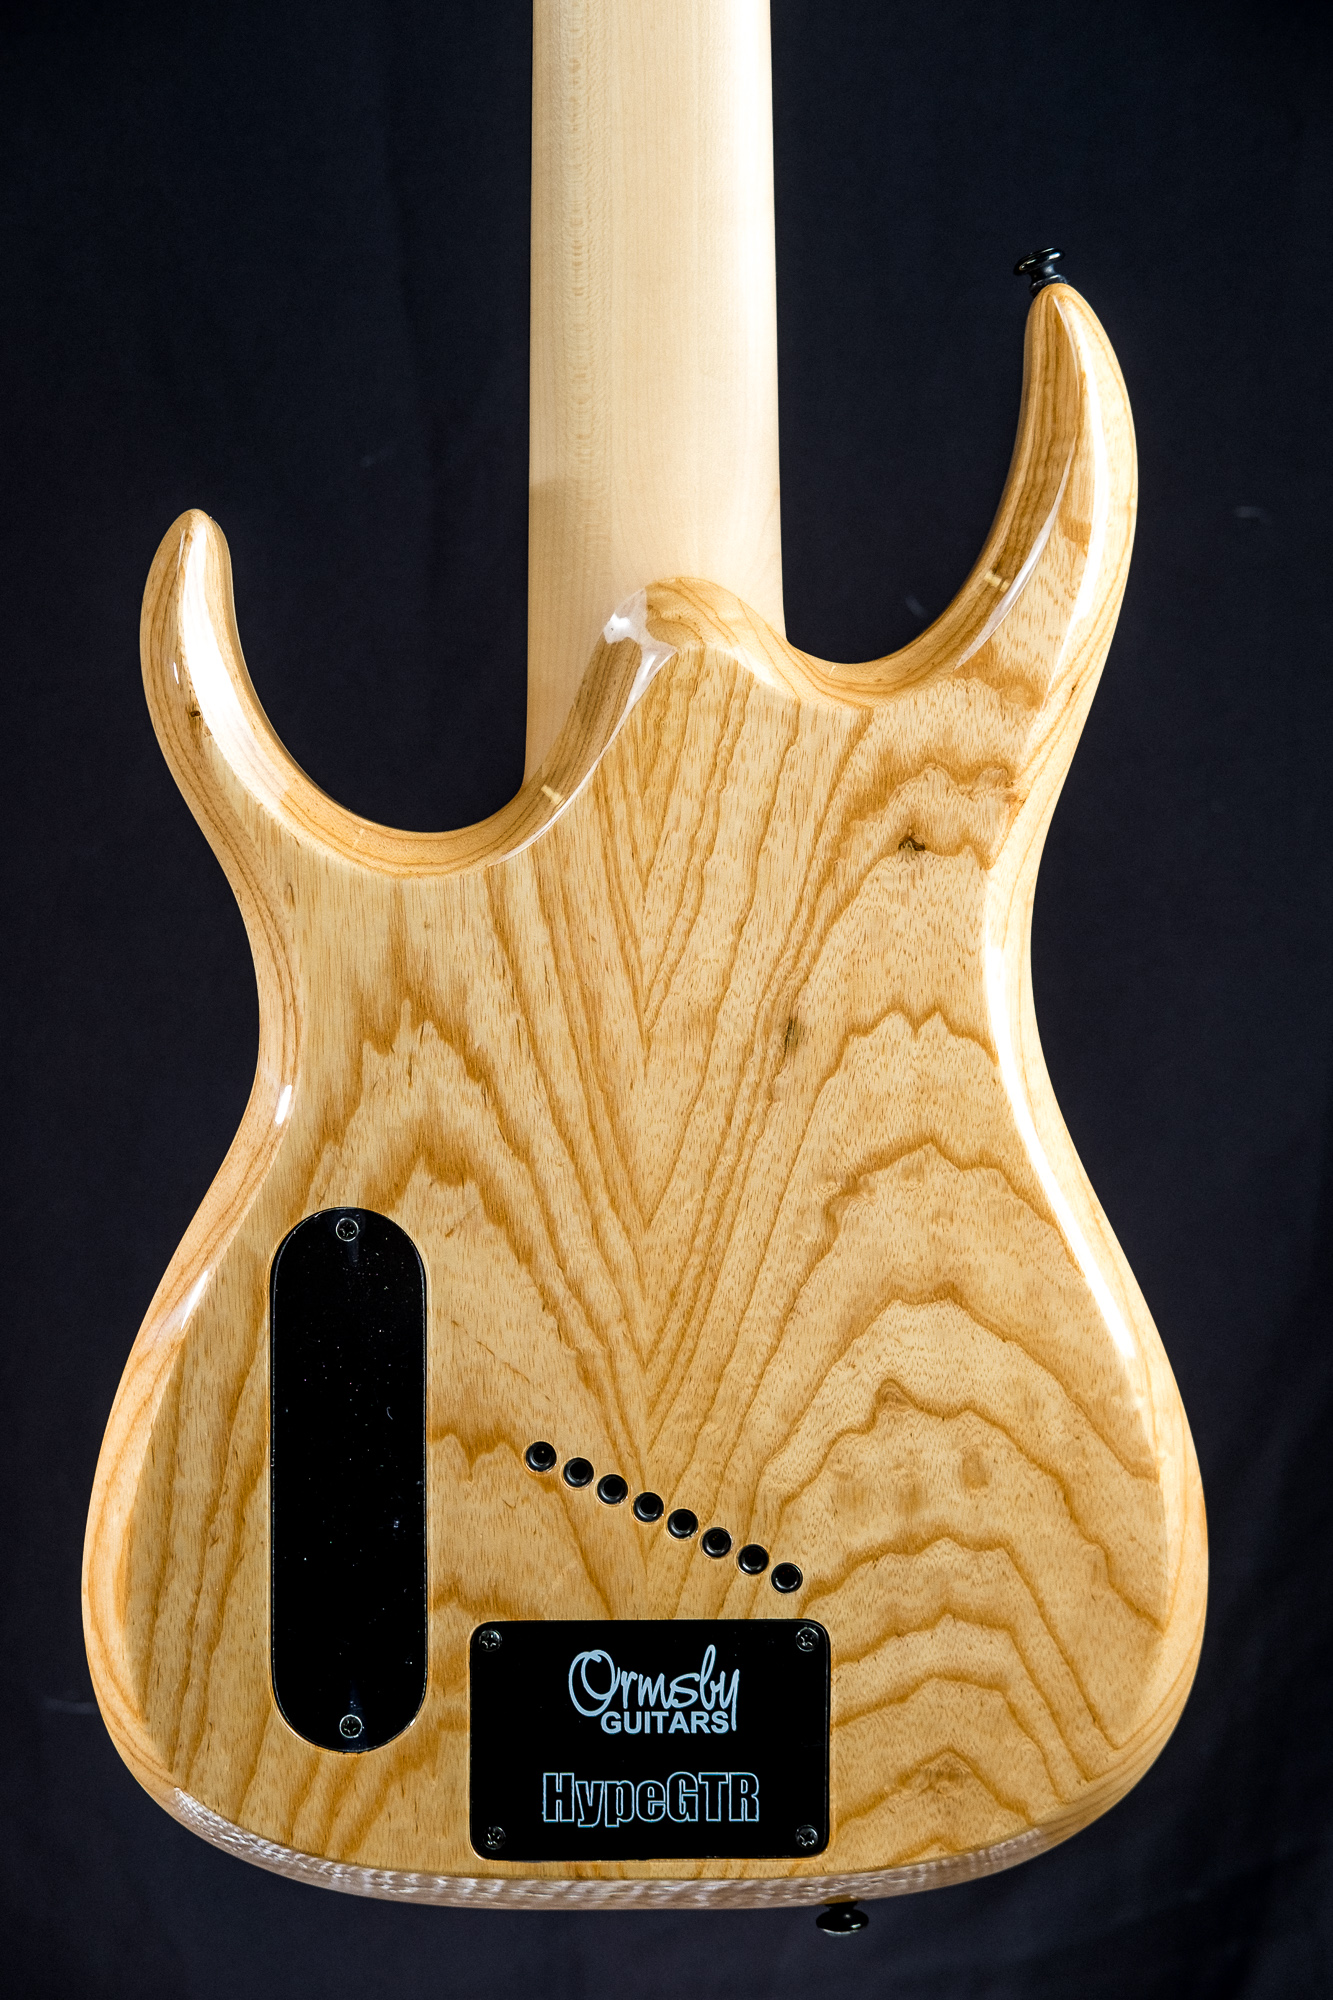 Ormsby GTR Run 2 Hype Walnut Burl 8-8.jpg